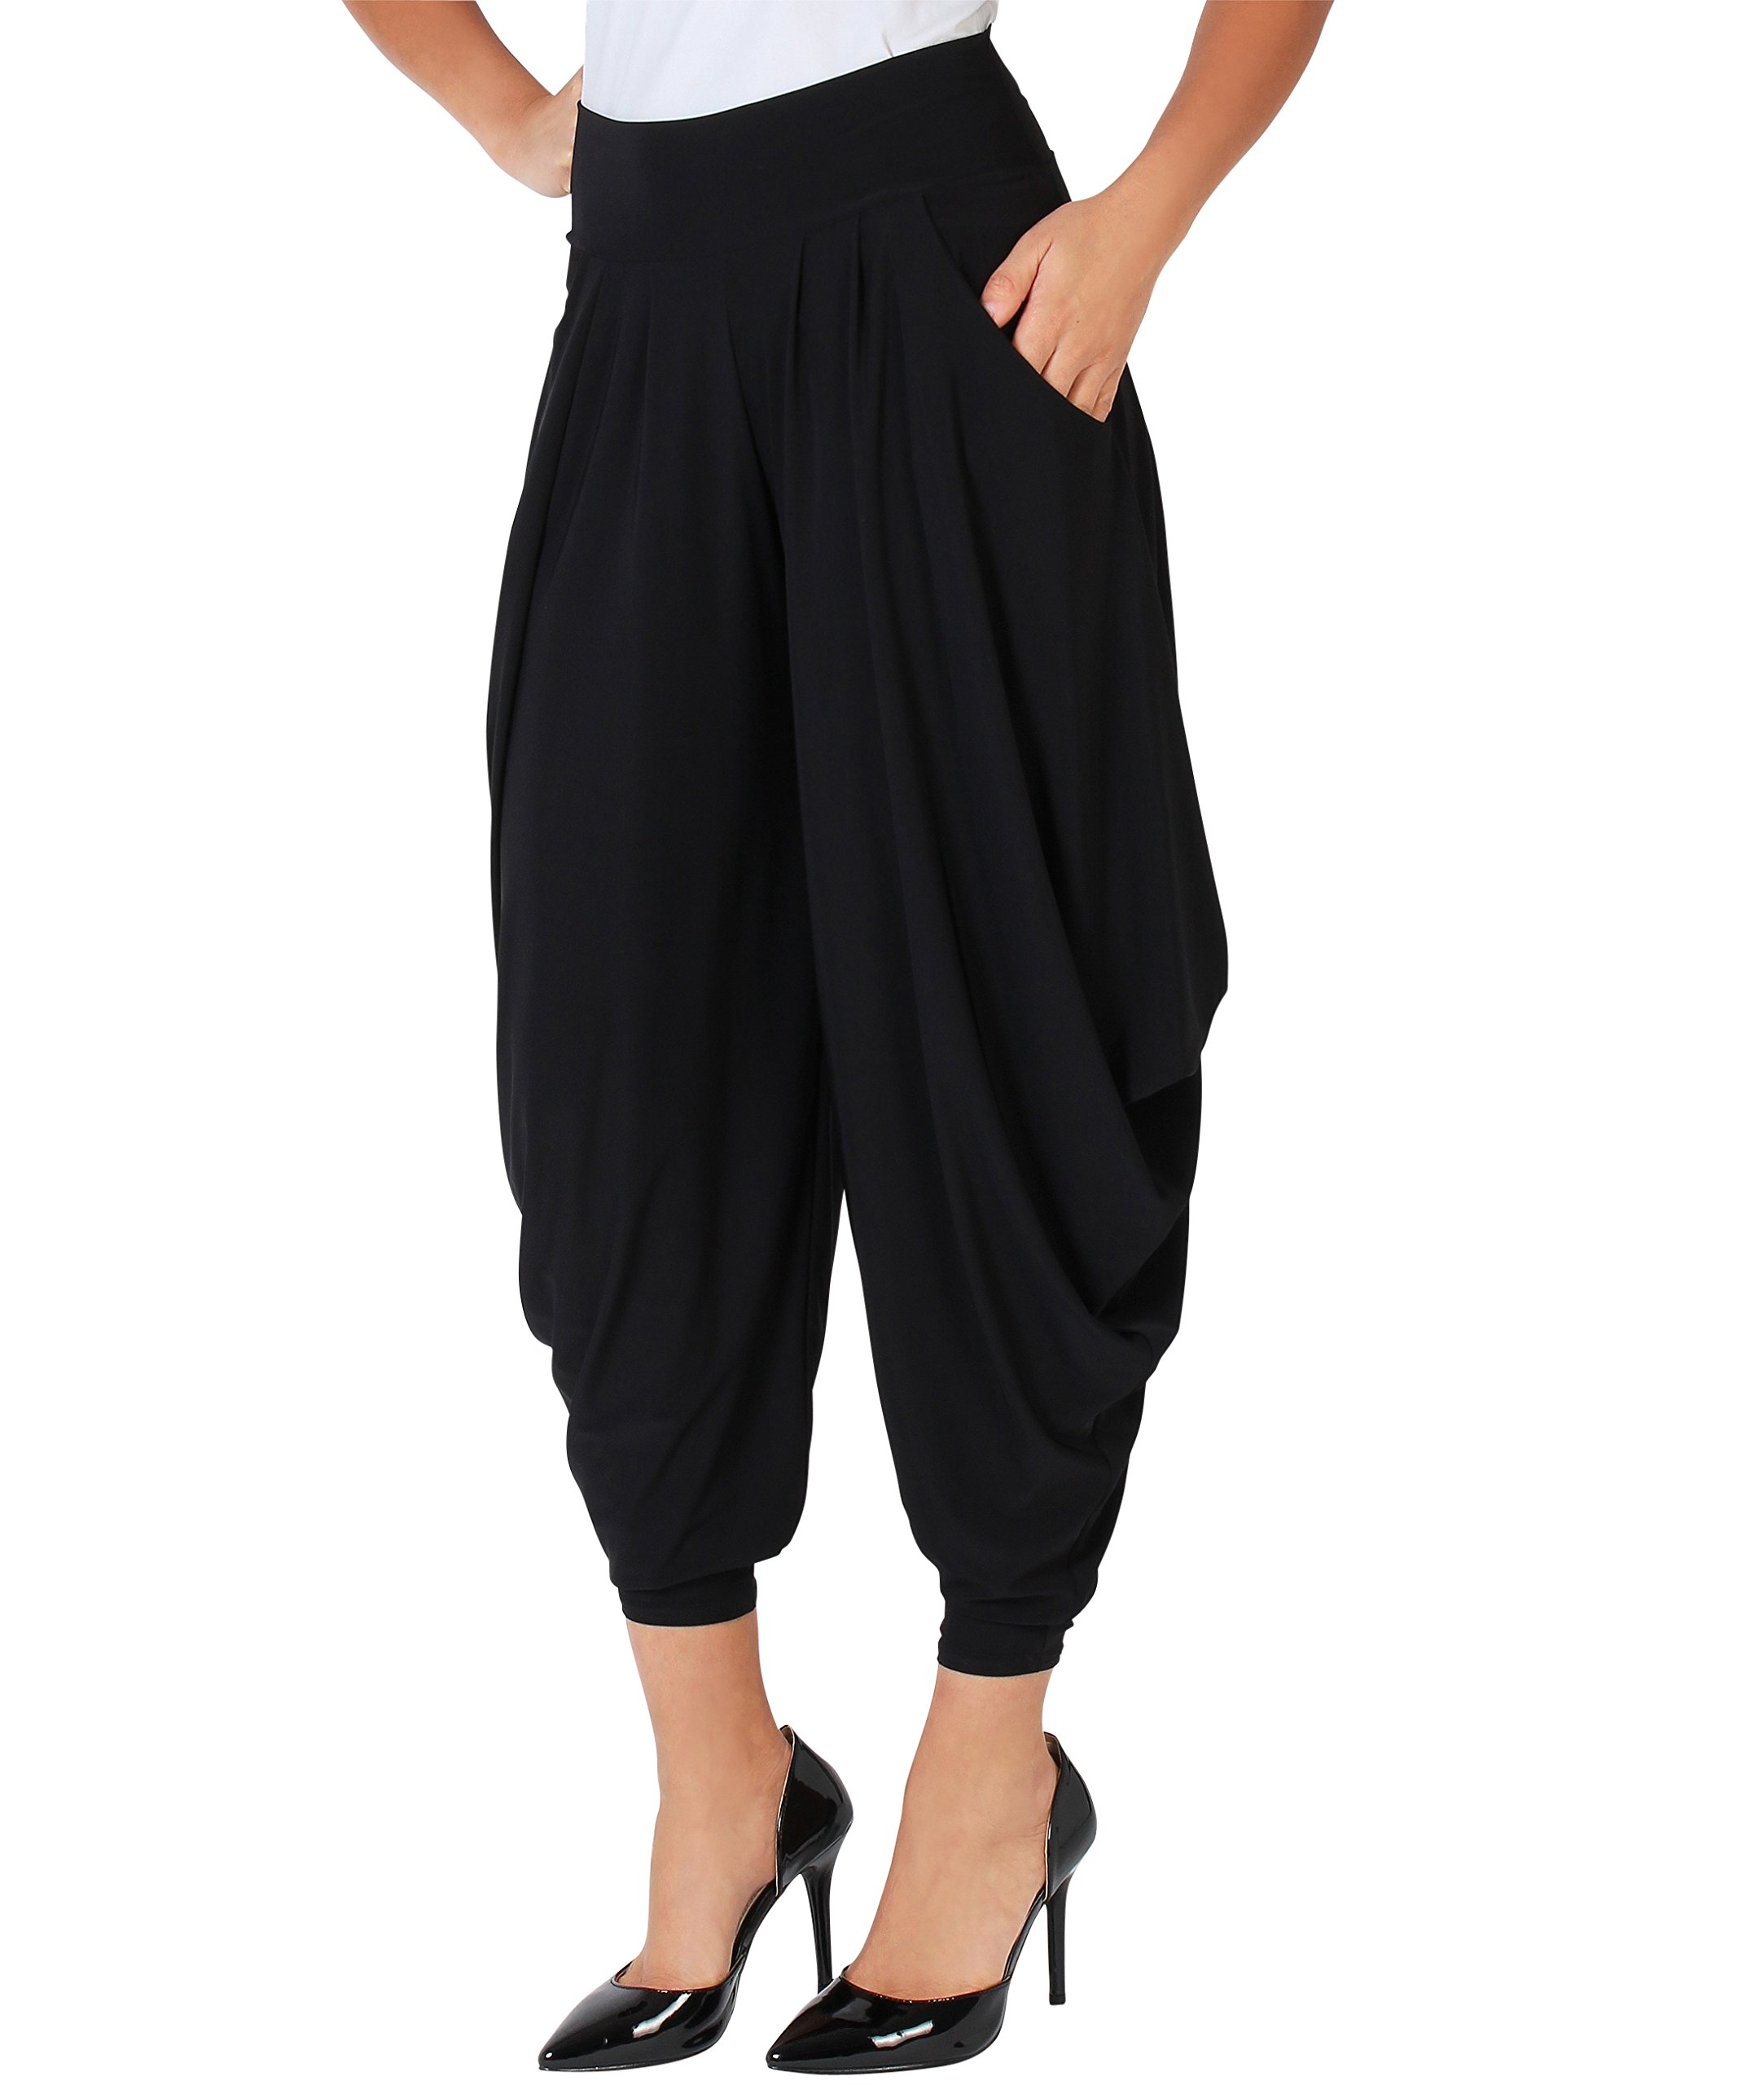 KRISP Harem Pants (Black, 12),[8328-BLK-16.1]